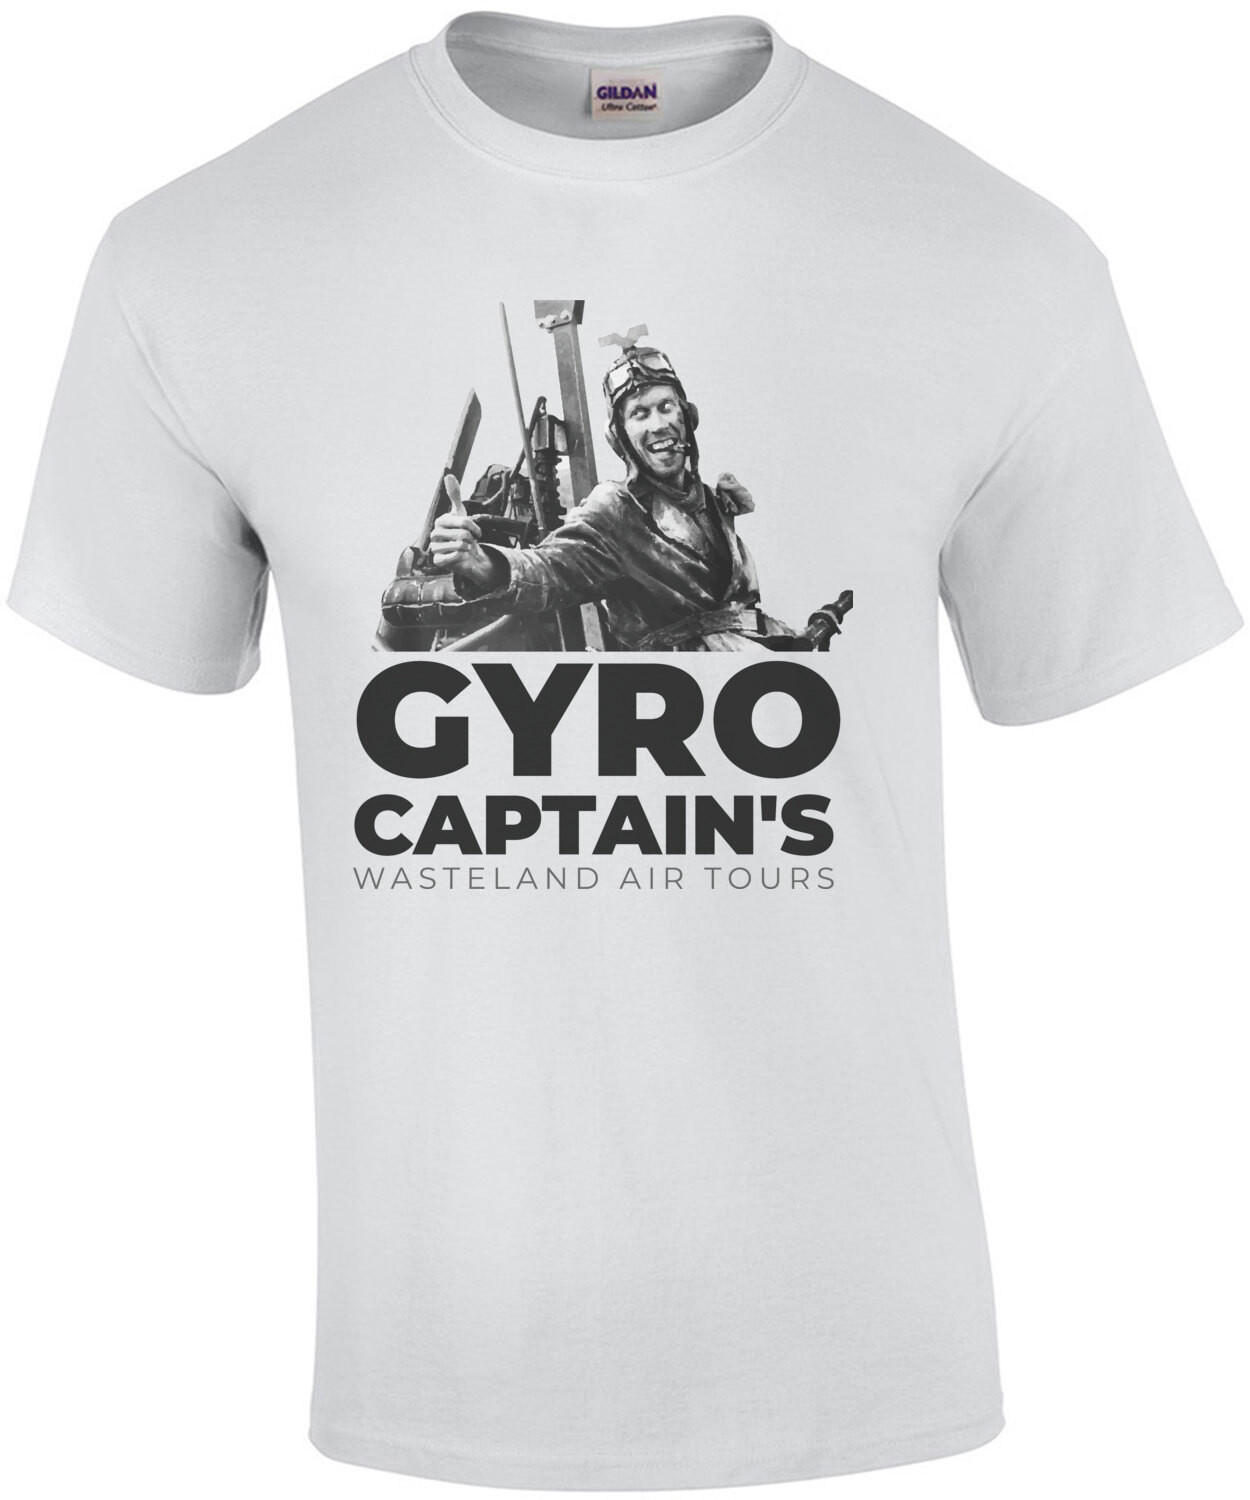 Gyro Captain's Wasteland Air Tours - Mad Max - 80's T-Shirt